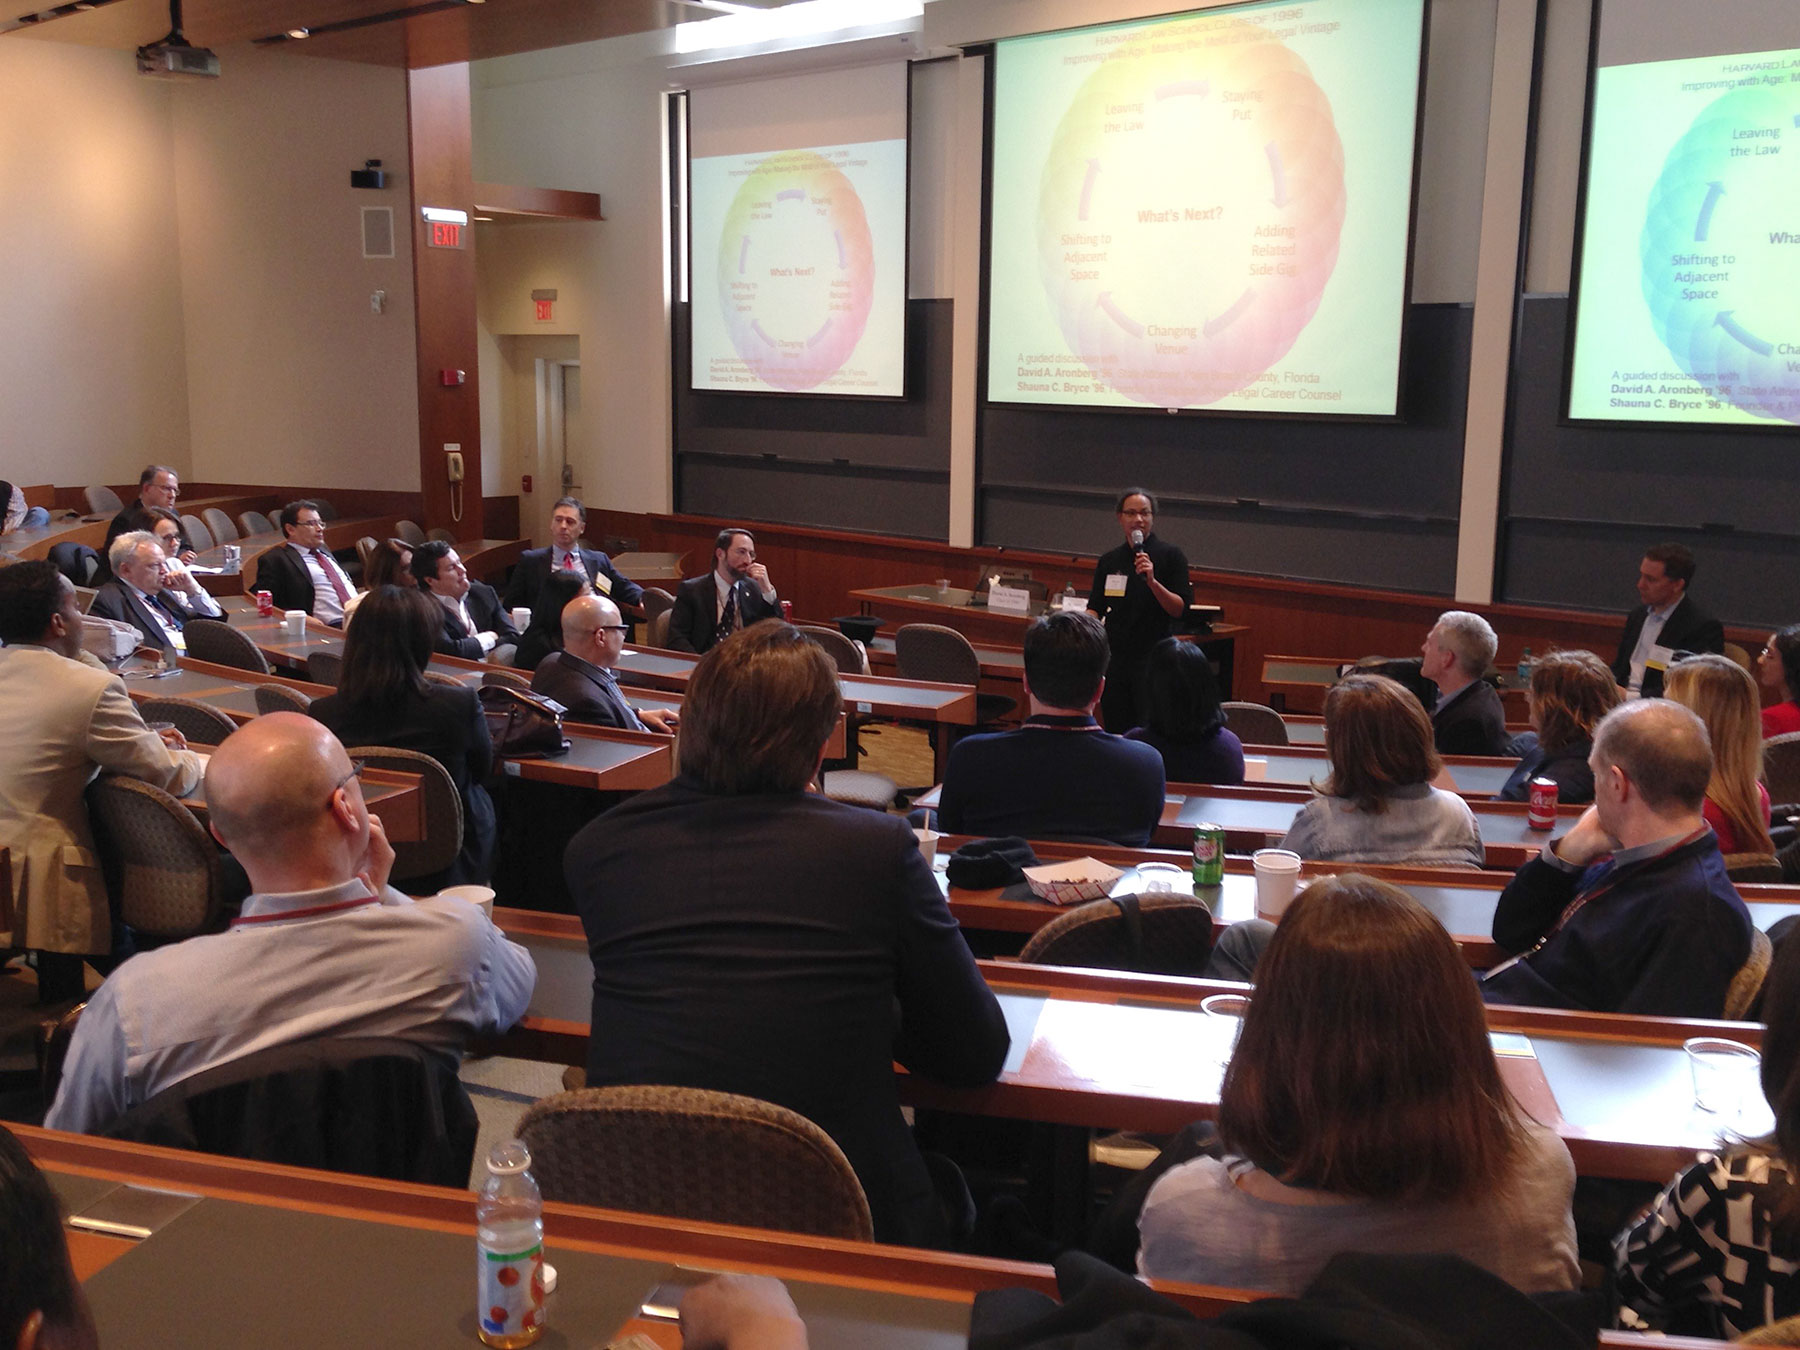 """Shauna C. Bryce speaking to Harvard Law School alumni,addressing mid-career options and decision-making in """"Improving with Age: Making the Most of Your Legal Vintage,"""" at HLS, Cambridge, MA."""